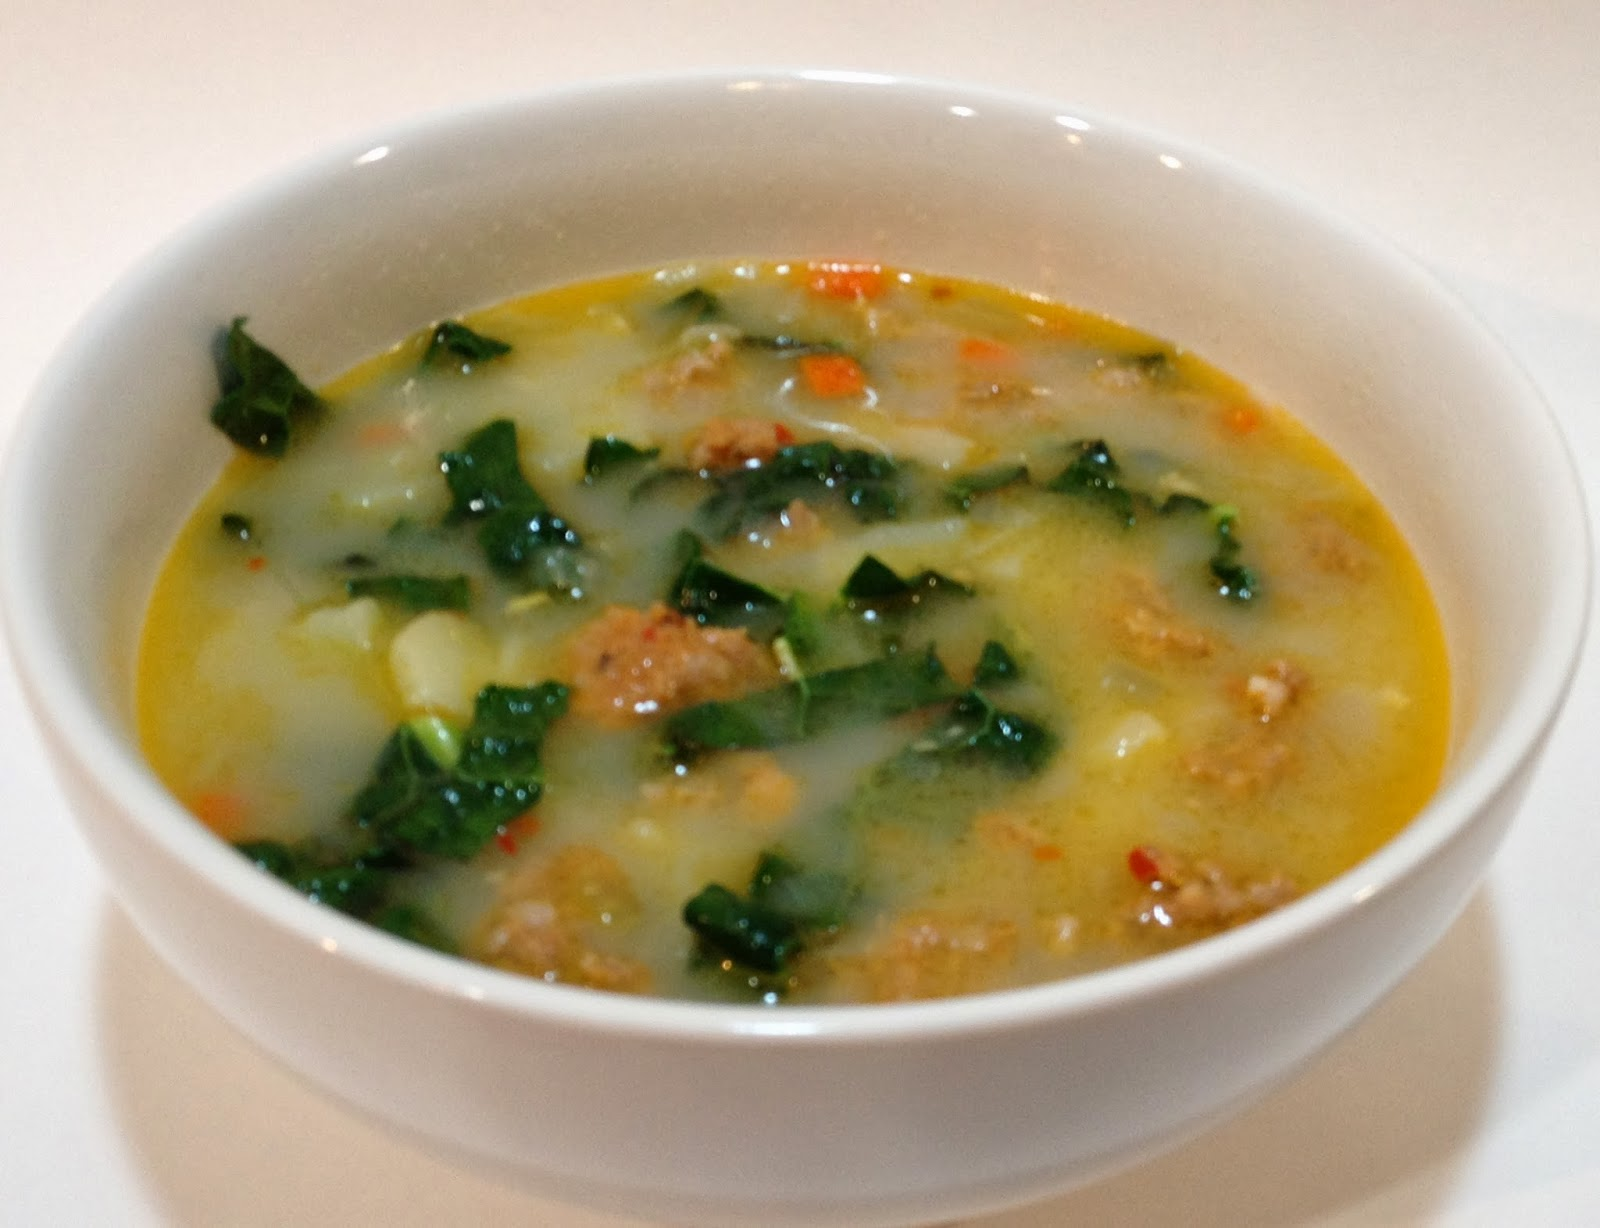 The Boozy Epicure: Sausage, Potato and Kale Soup (aka Zuppa Toscana)